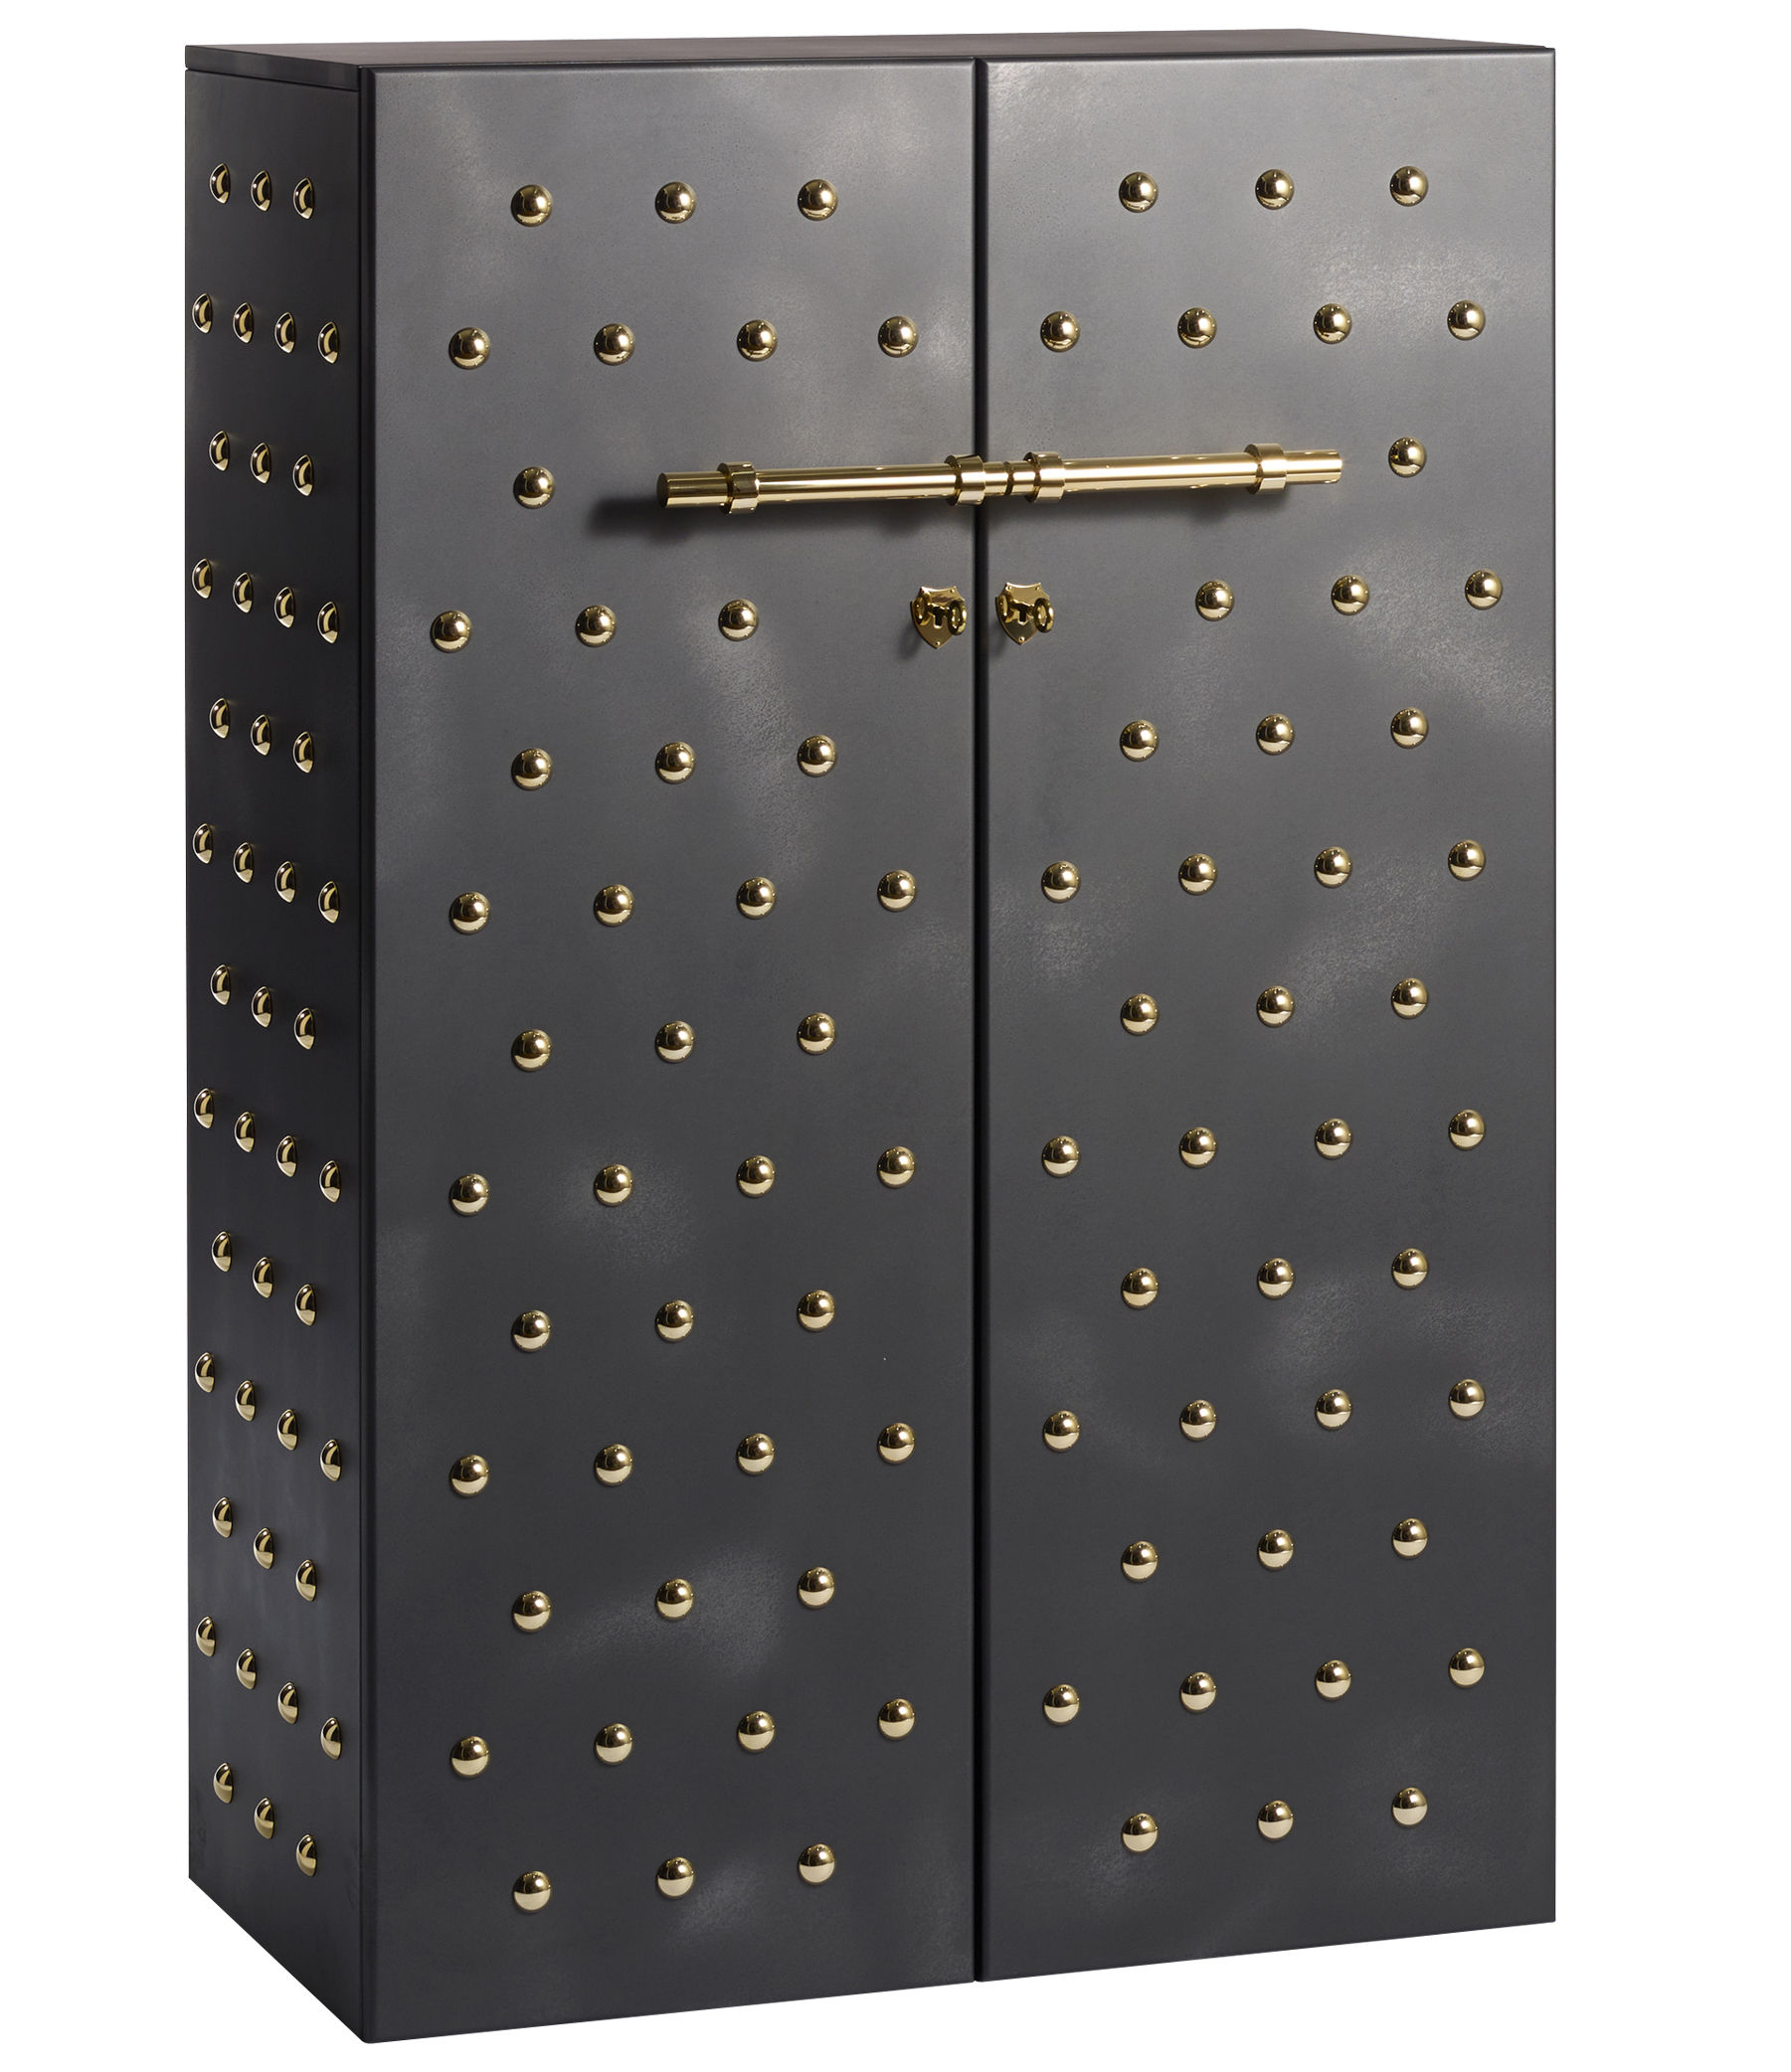 Mobilier - Commodes, buffets & armoires - Armoire Principe Galeotto / L 90 x H150 cm - Or 24 carats - Opinion Ciatti - Fonte / Rivets & poignée : Or 24 carats - MDF peint, Or 24 carats, Verre